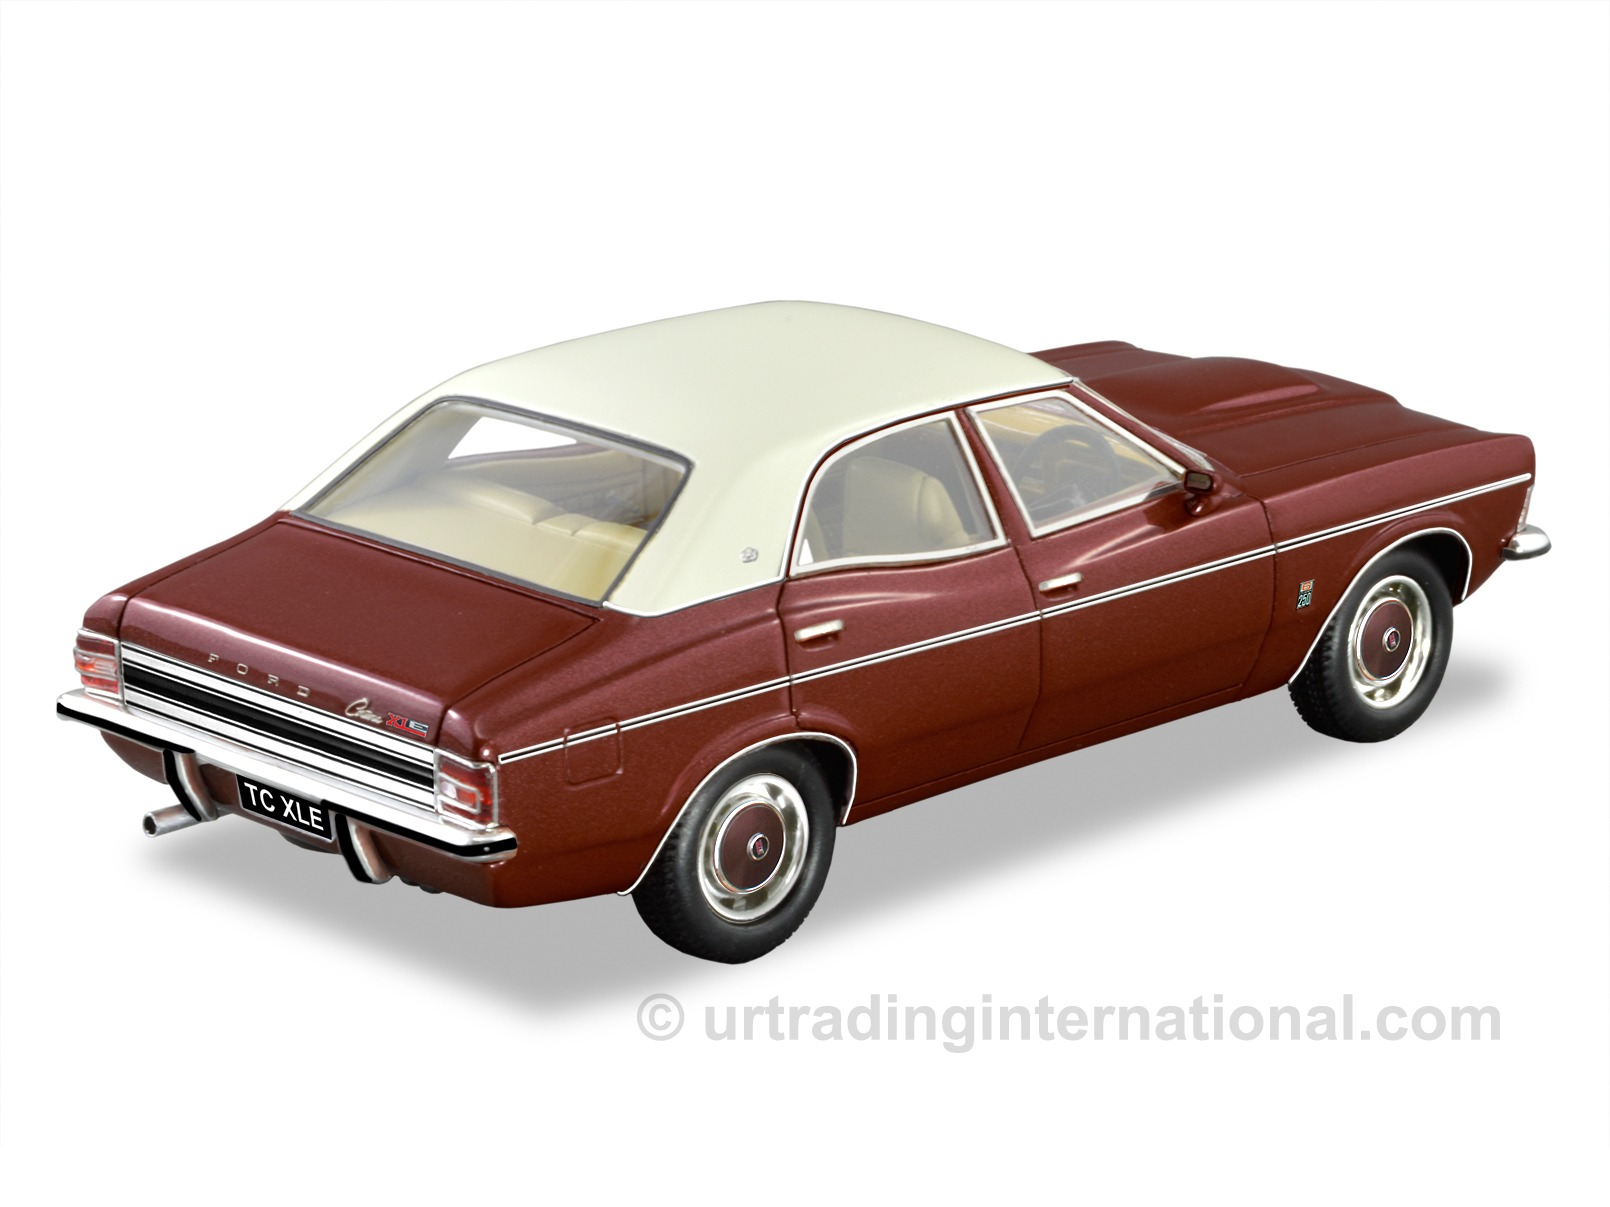 1972 Ford TC Cortina XLE – Vintage Burgundy Metallic